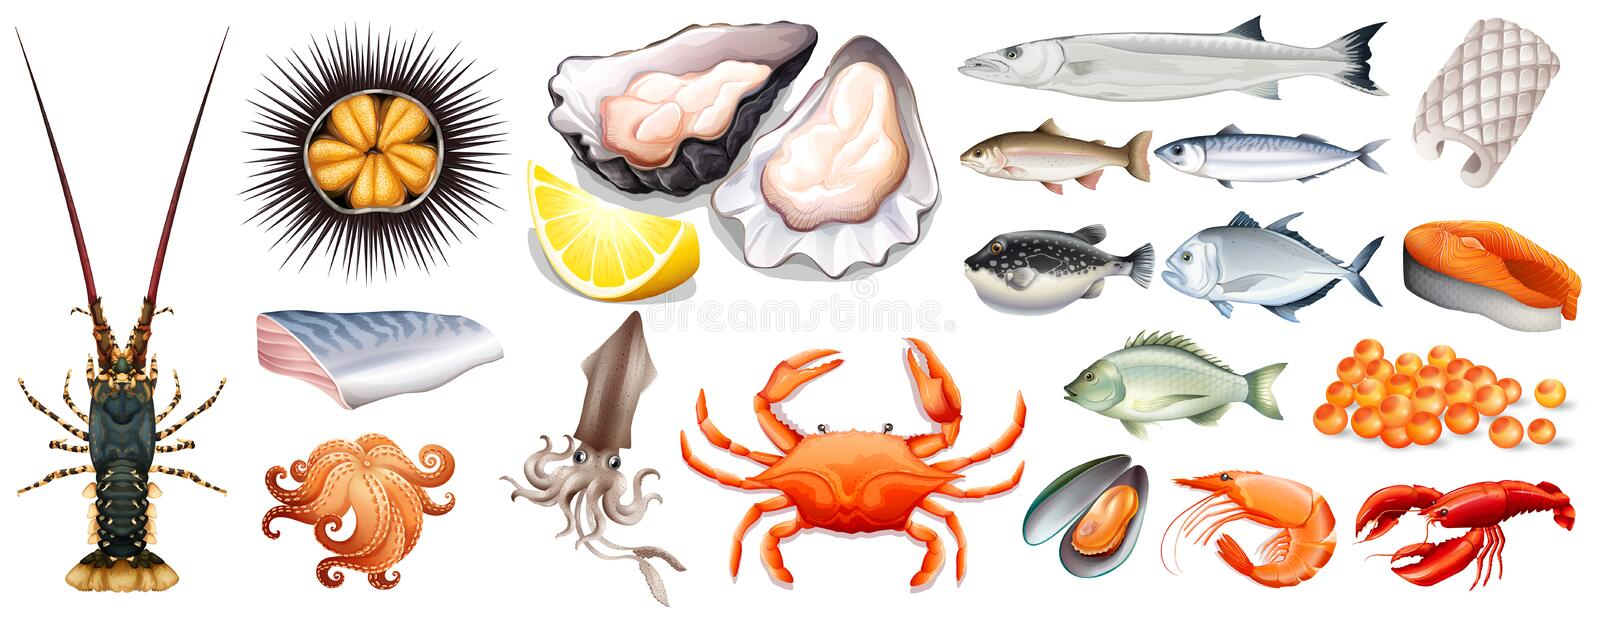 Set of different kinds of seafood royalty free illustration